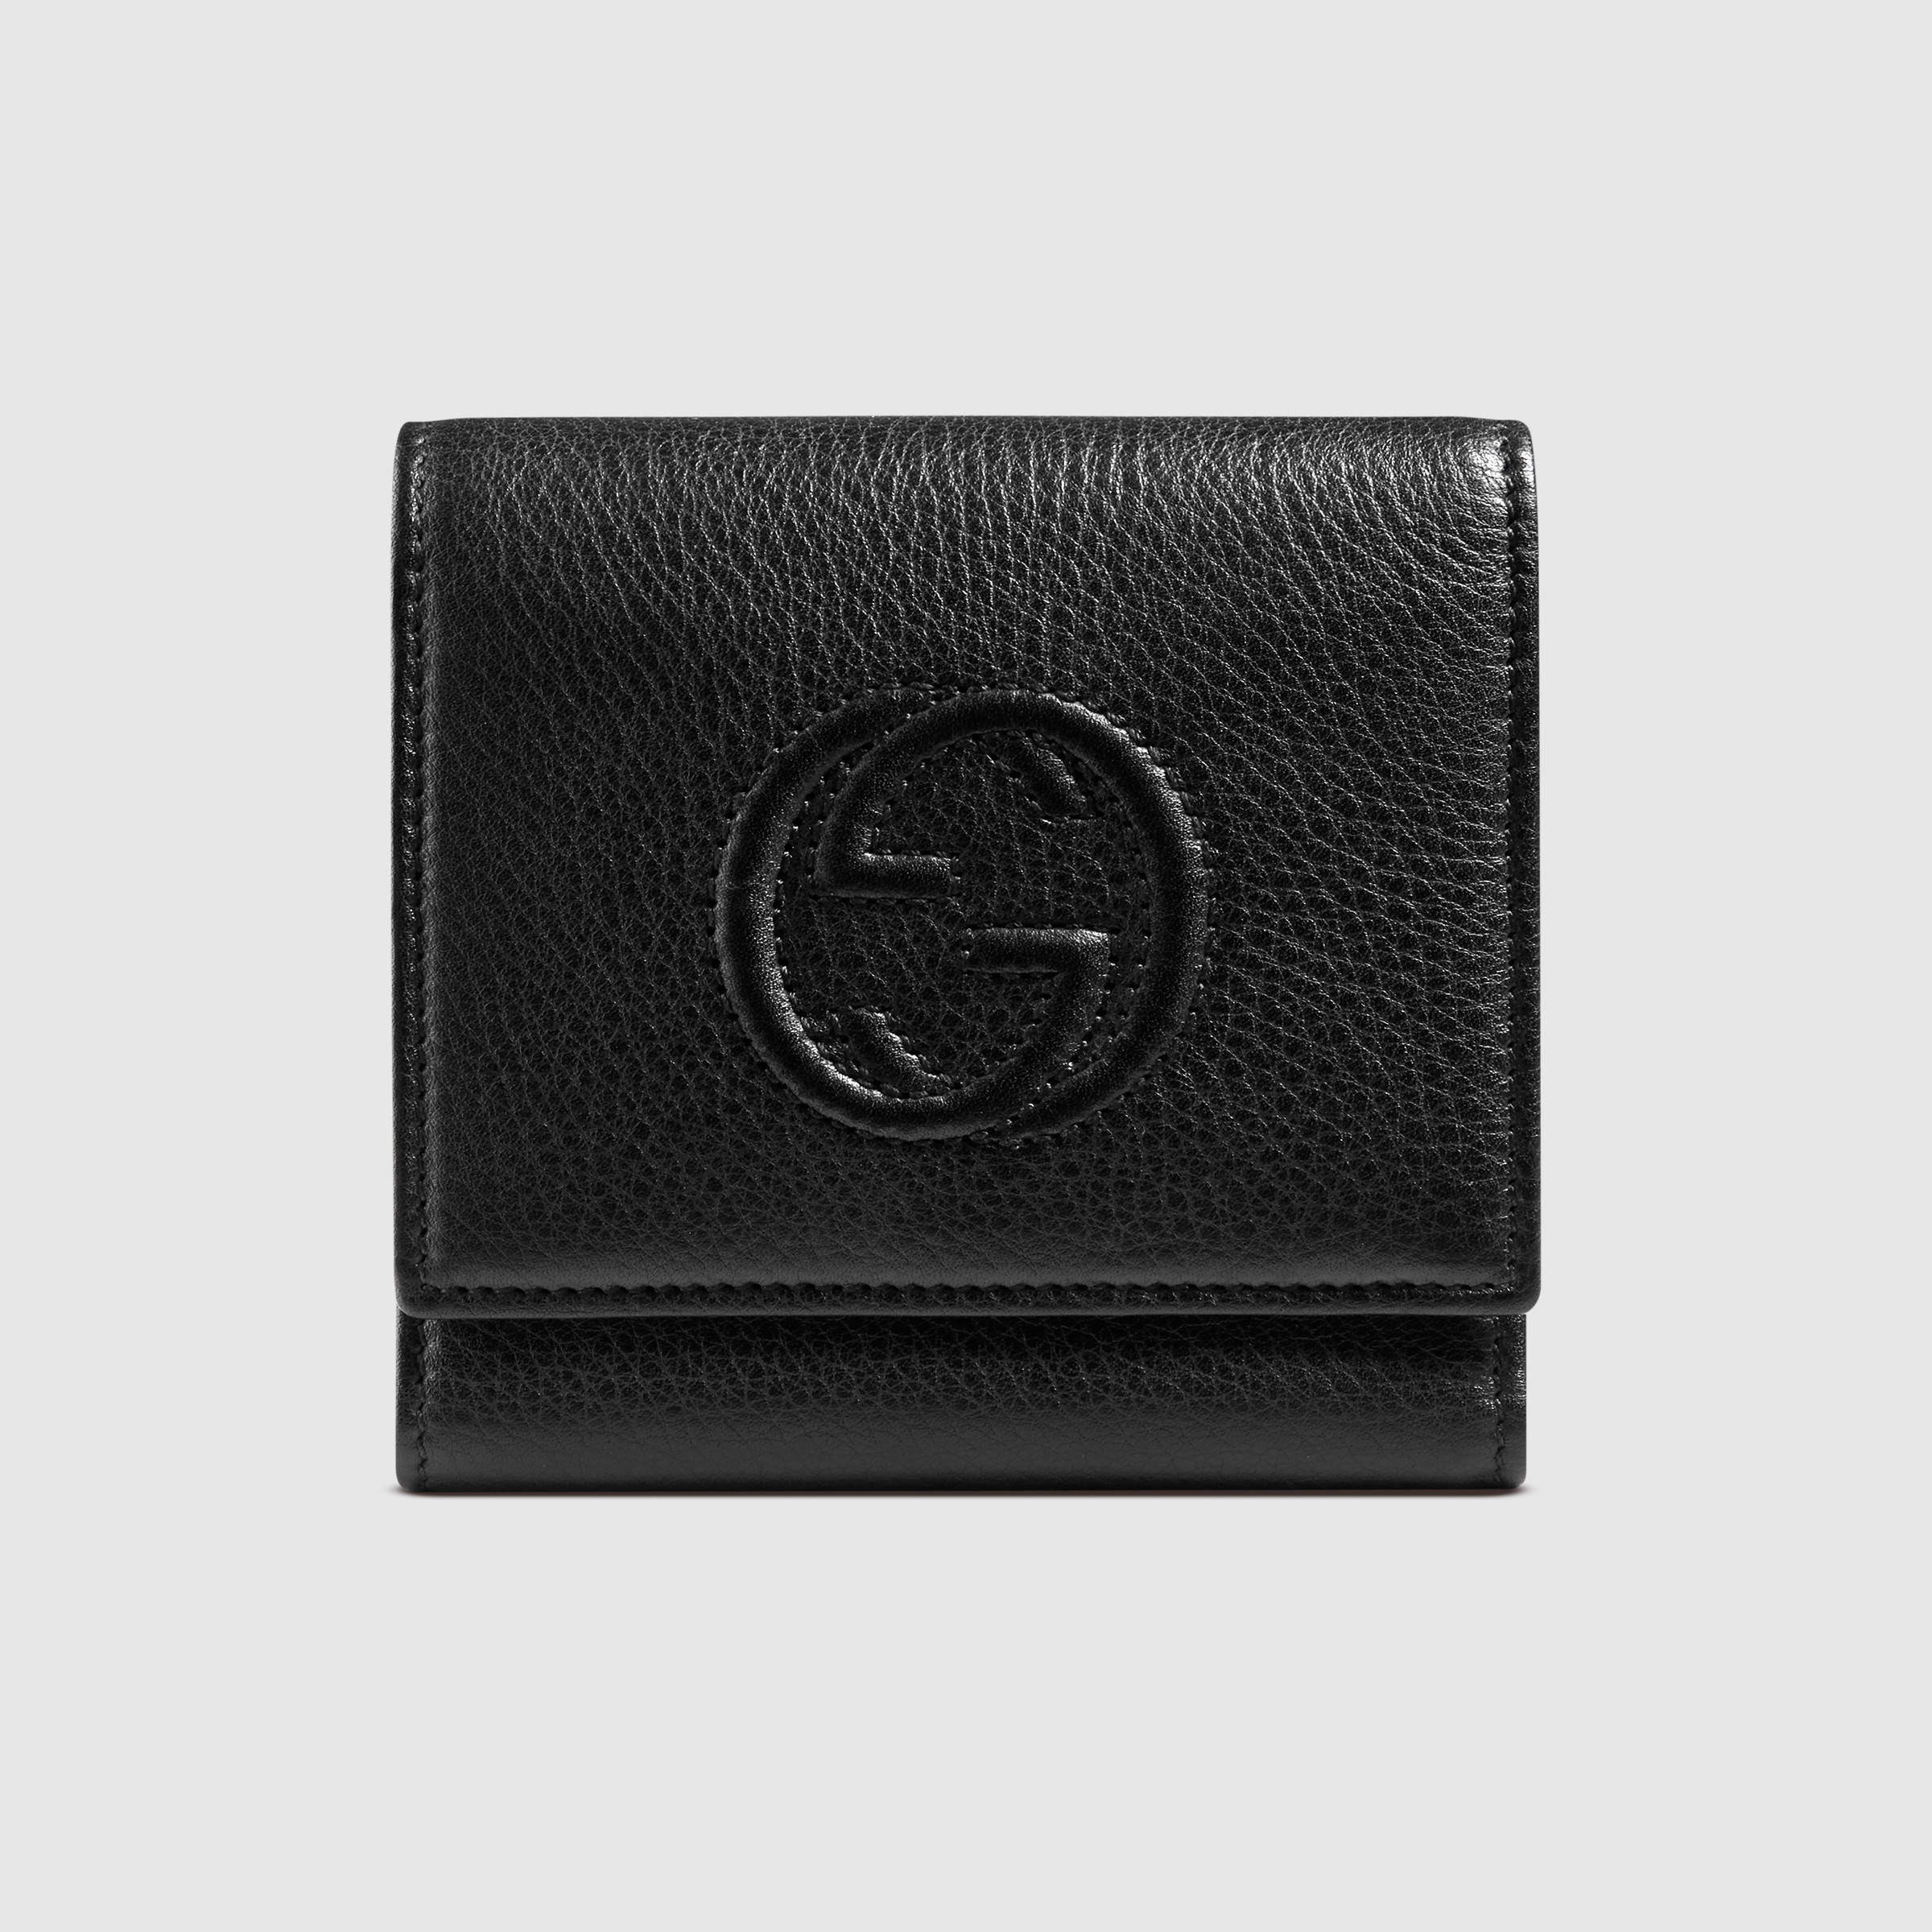 a47f3cbf19f5 Gucci Soho Leather Flap Wallet in Black for Men - Lyst